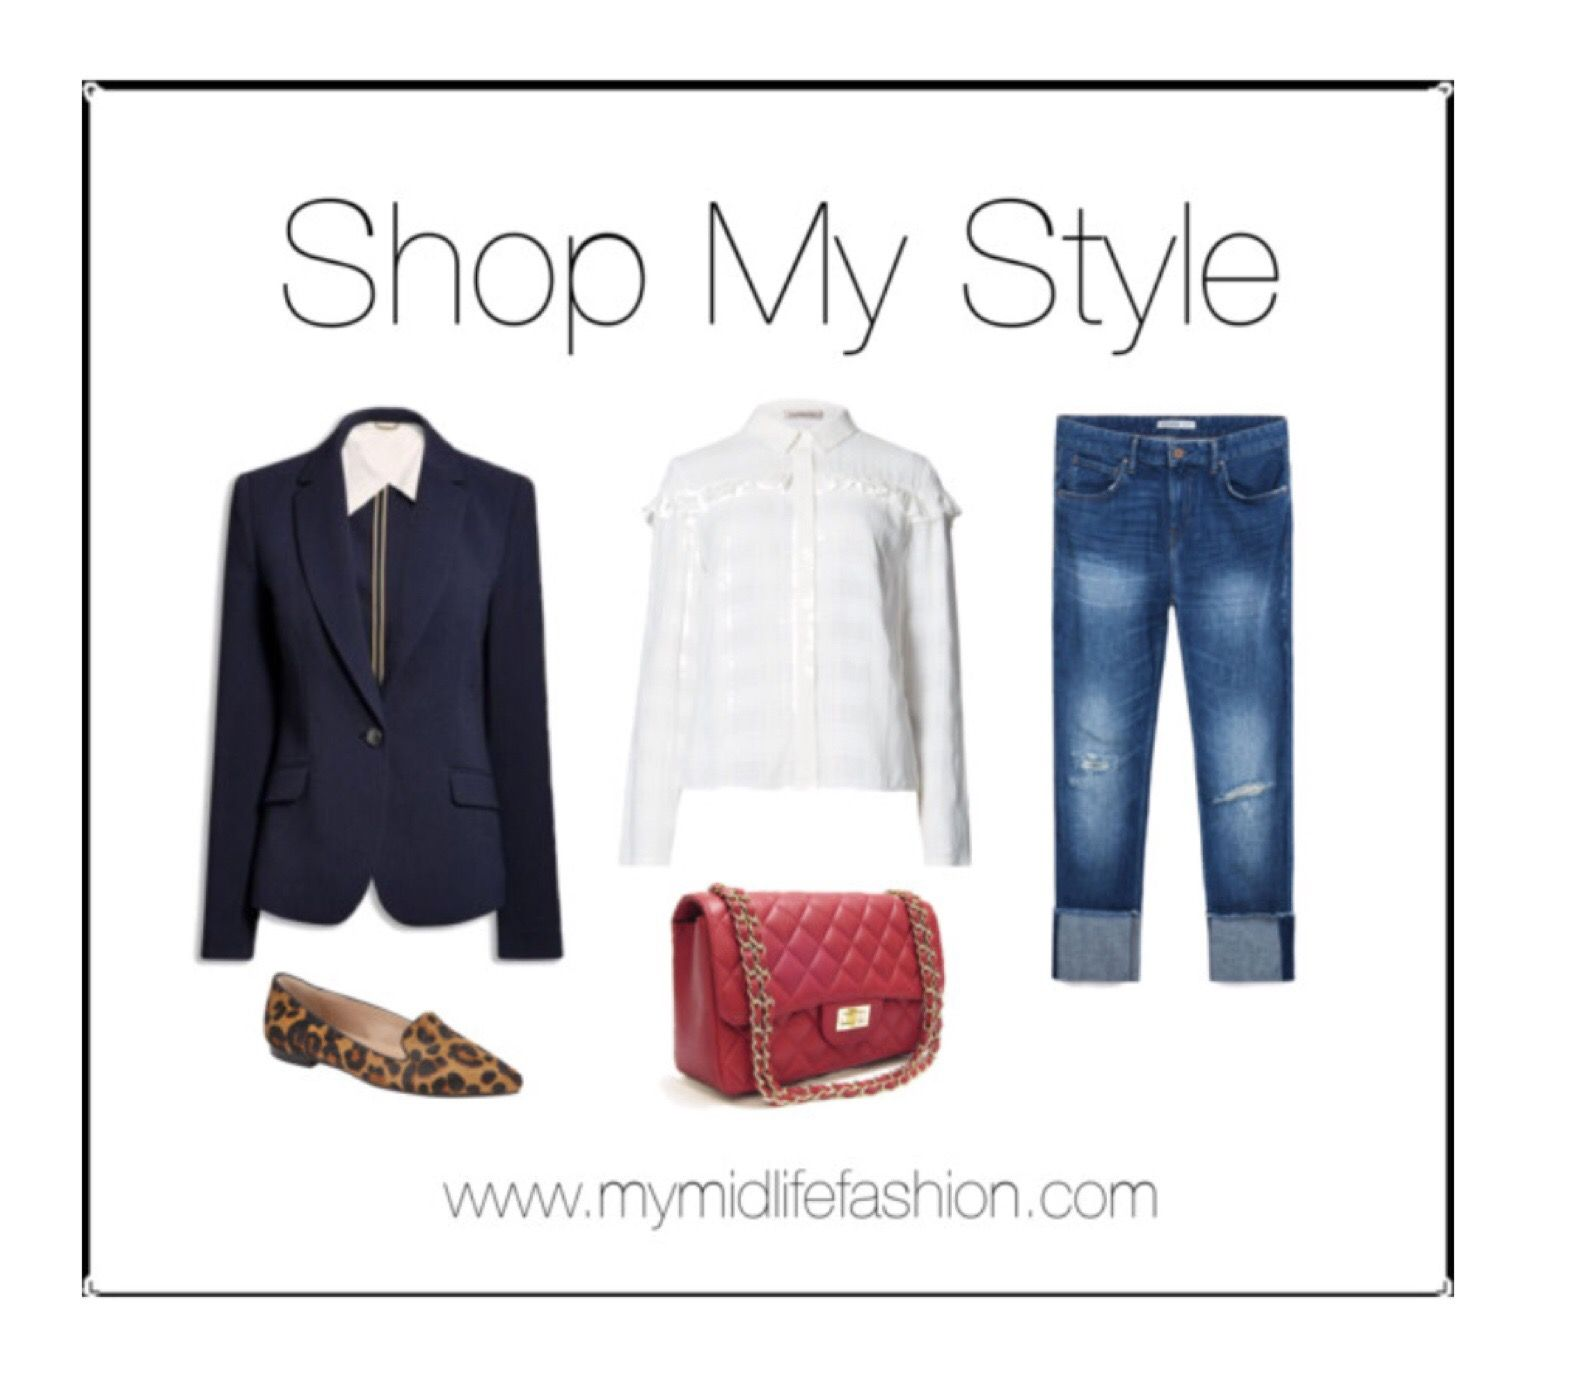 Tailored classics with a navy blazer, ruffle blouse, distressed denim & leopard print flats.